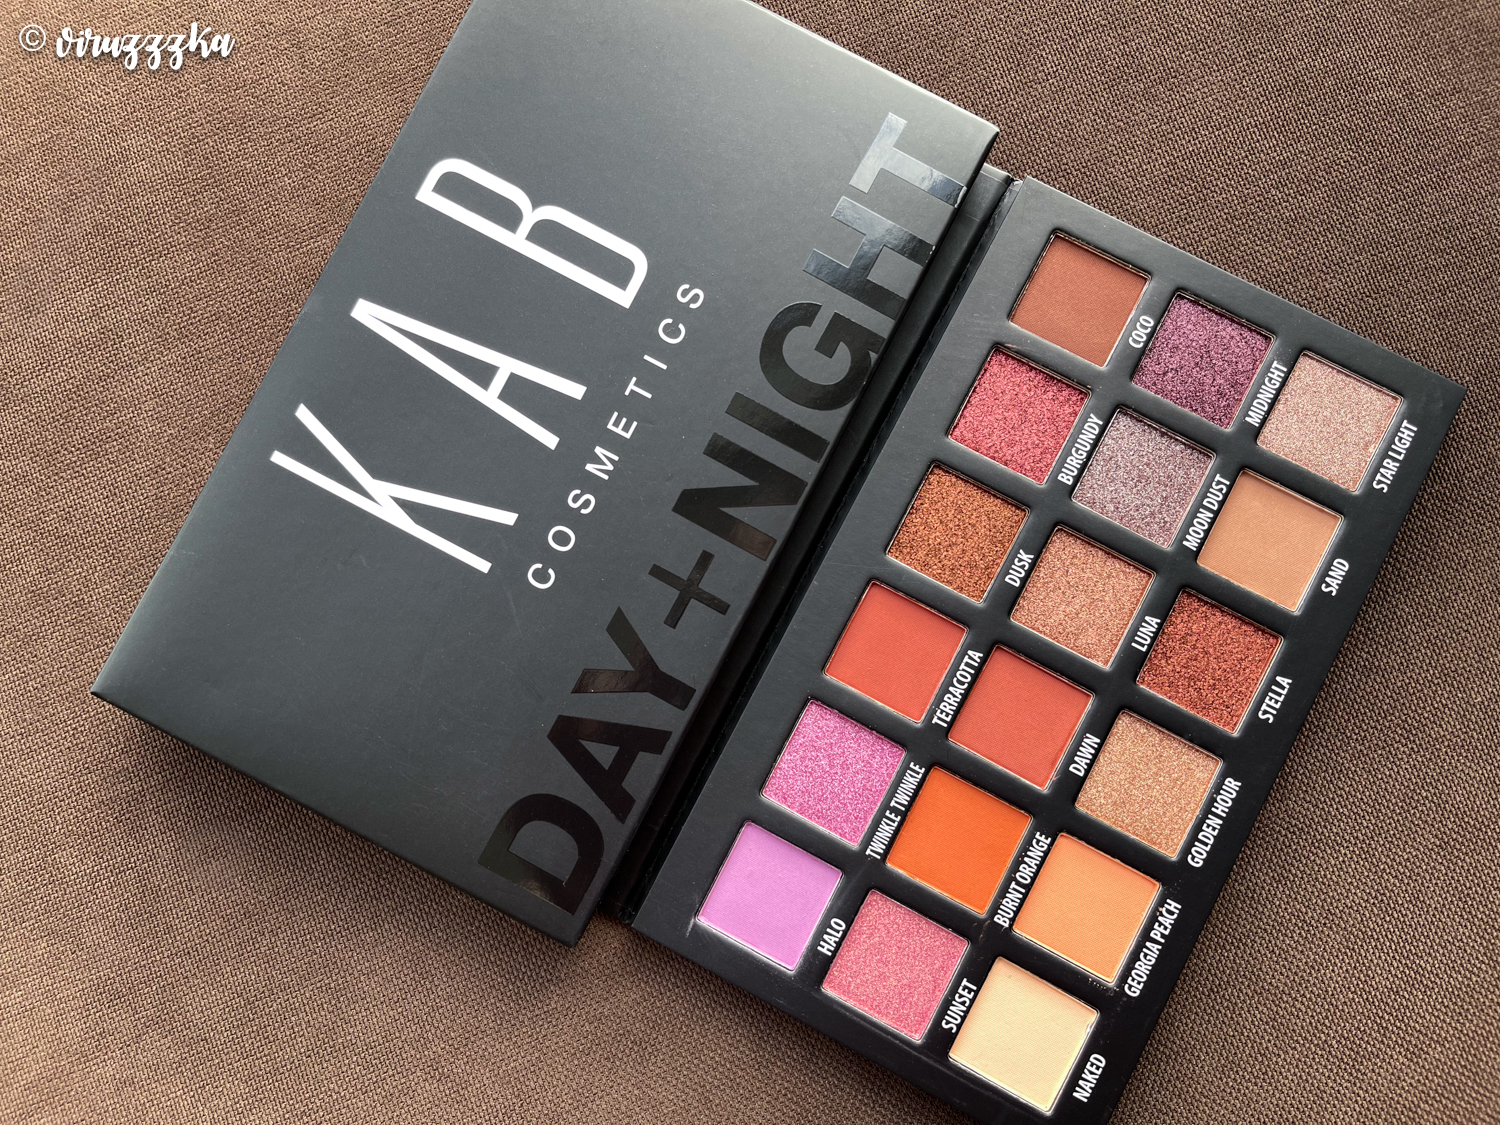 KAB COSMETICS DAY + NIGHT Eyeshadow Palette Review Swatches